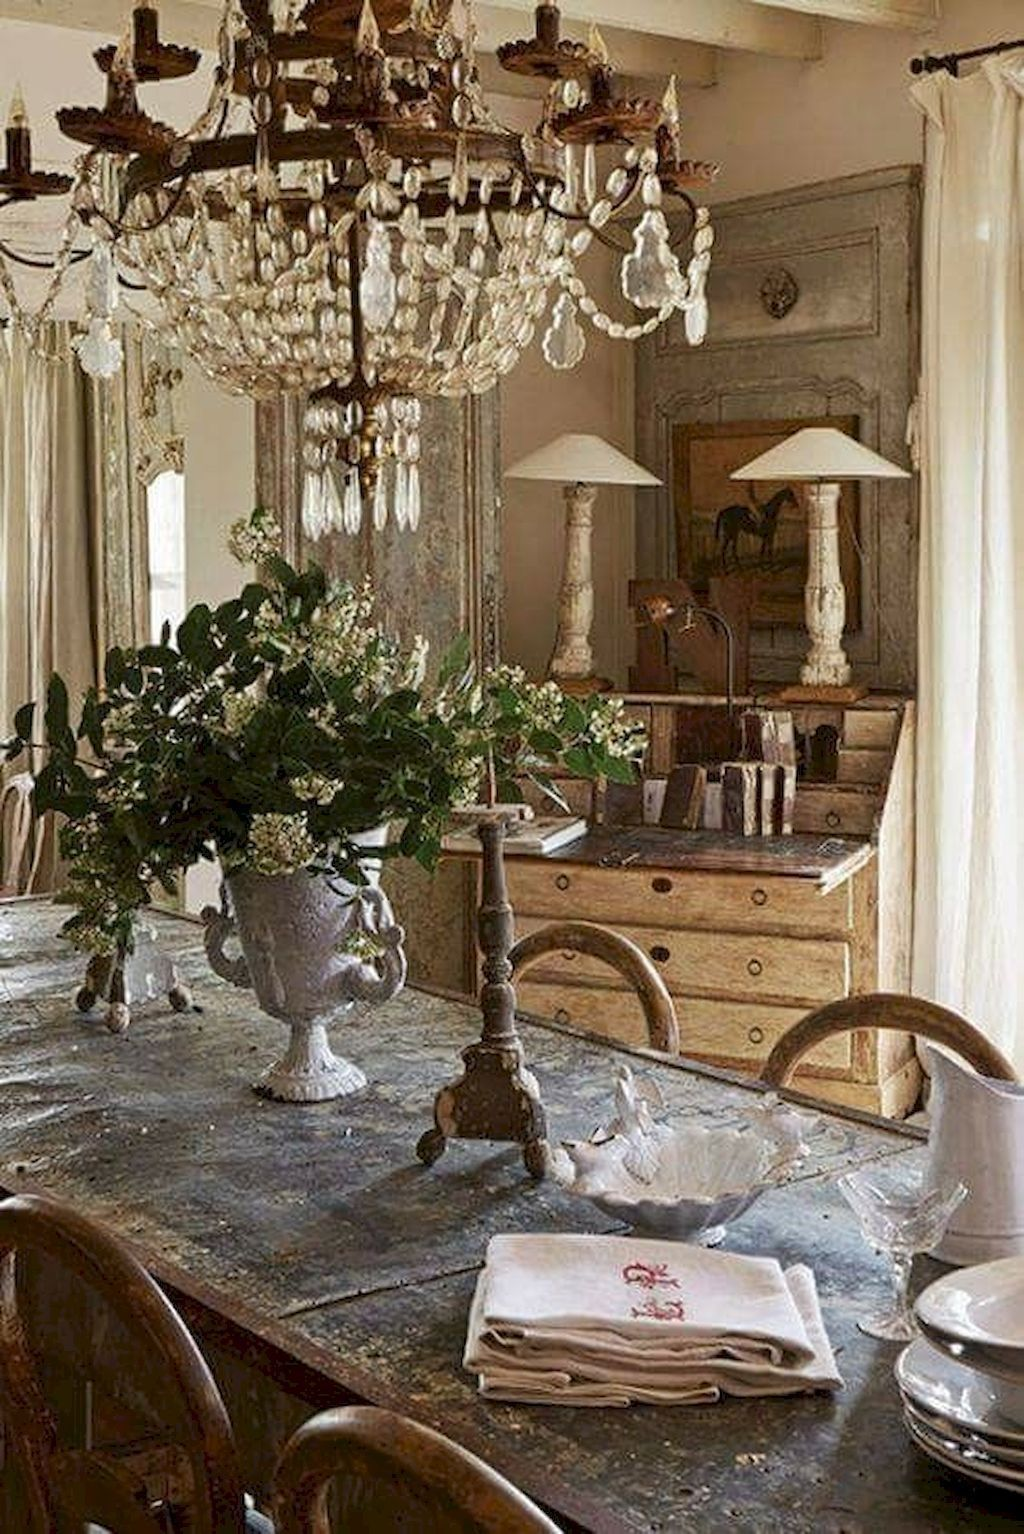 47 French Style Living Room Design Ideas: 47 Cozy Country Dining Room Decorating Ideas